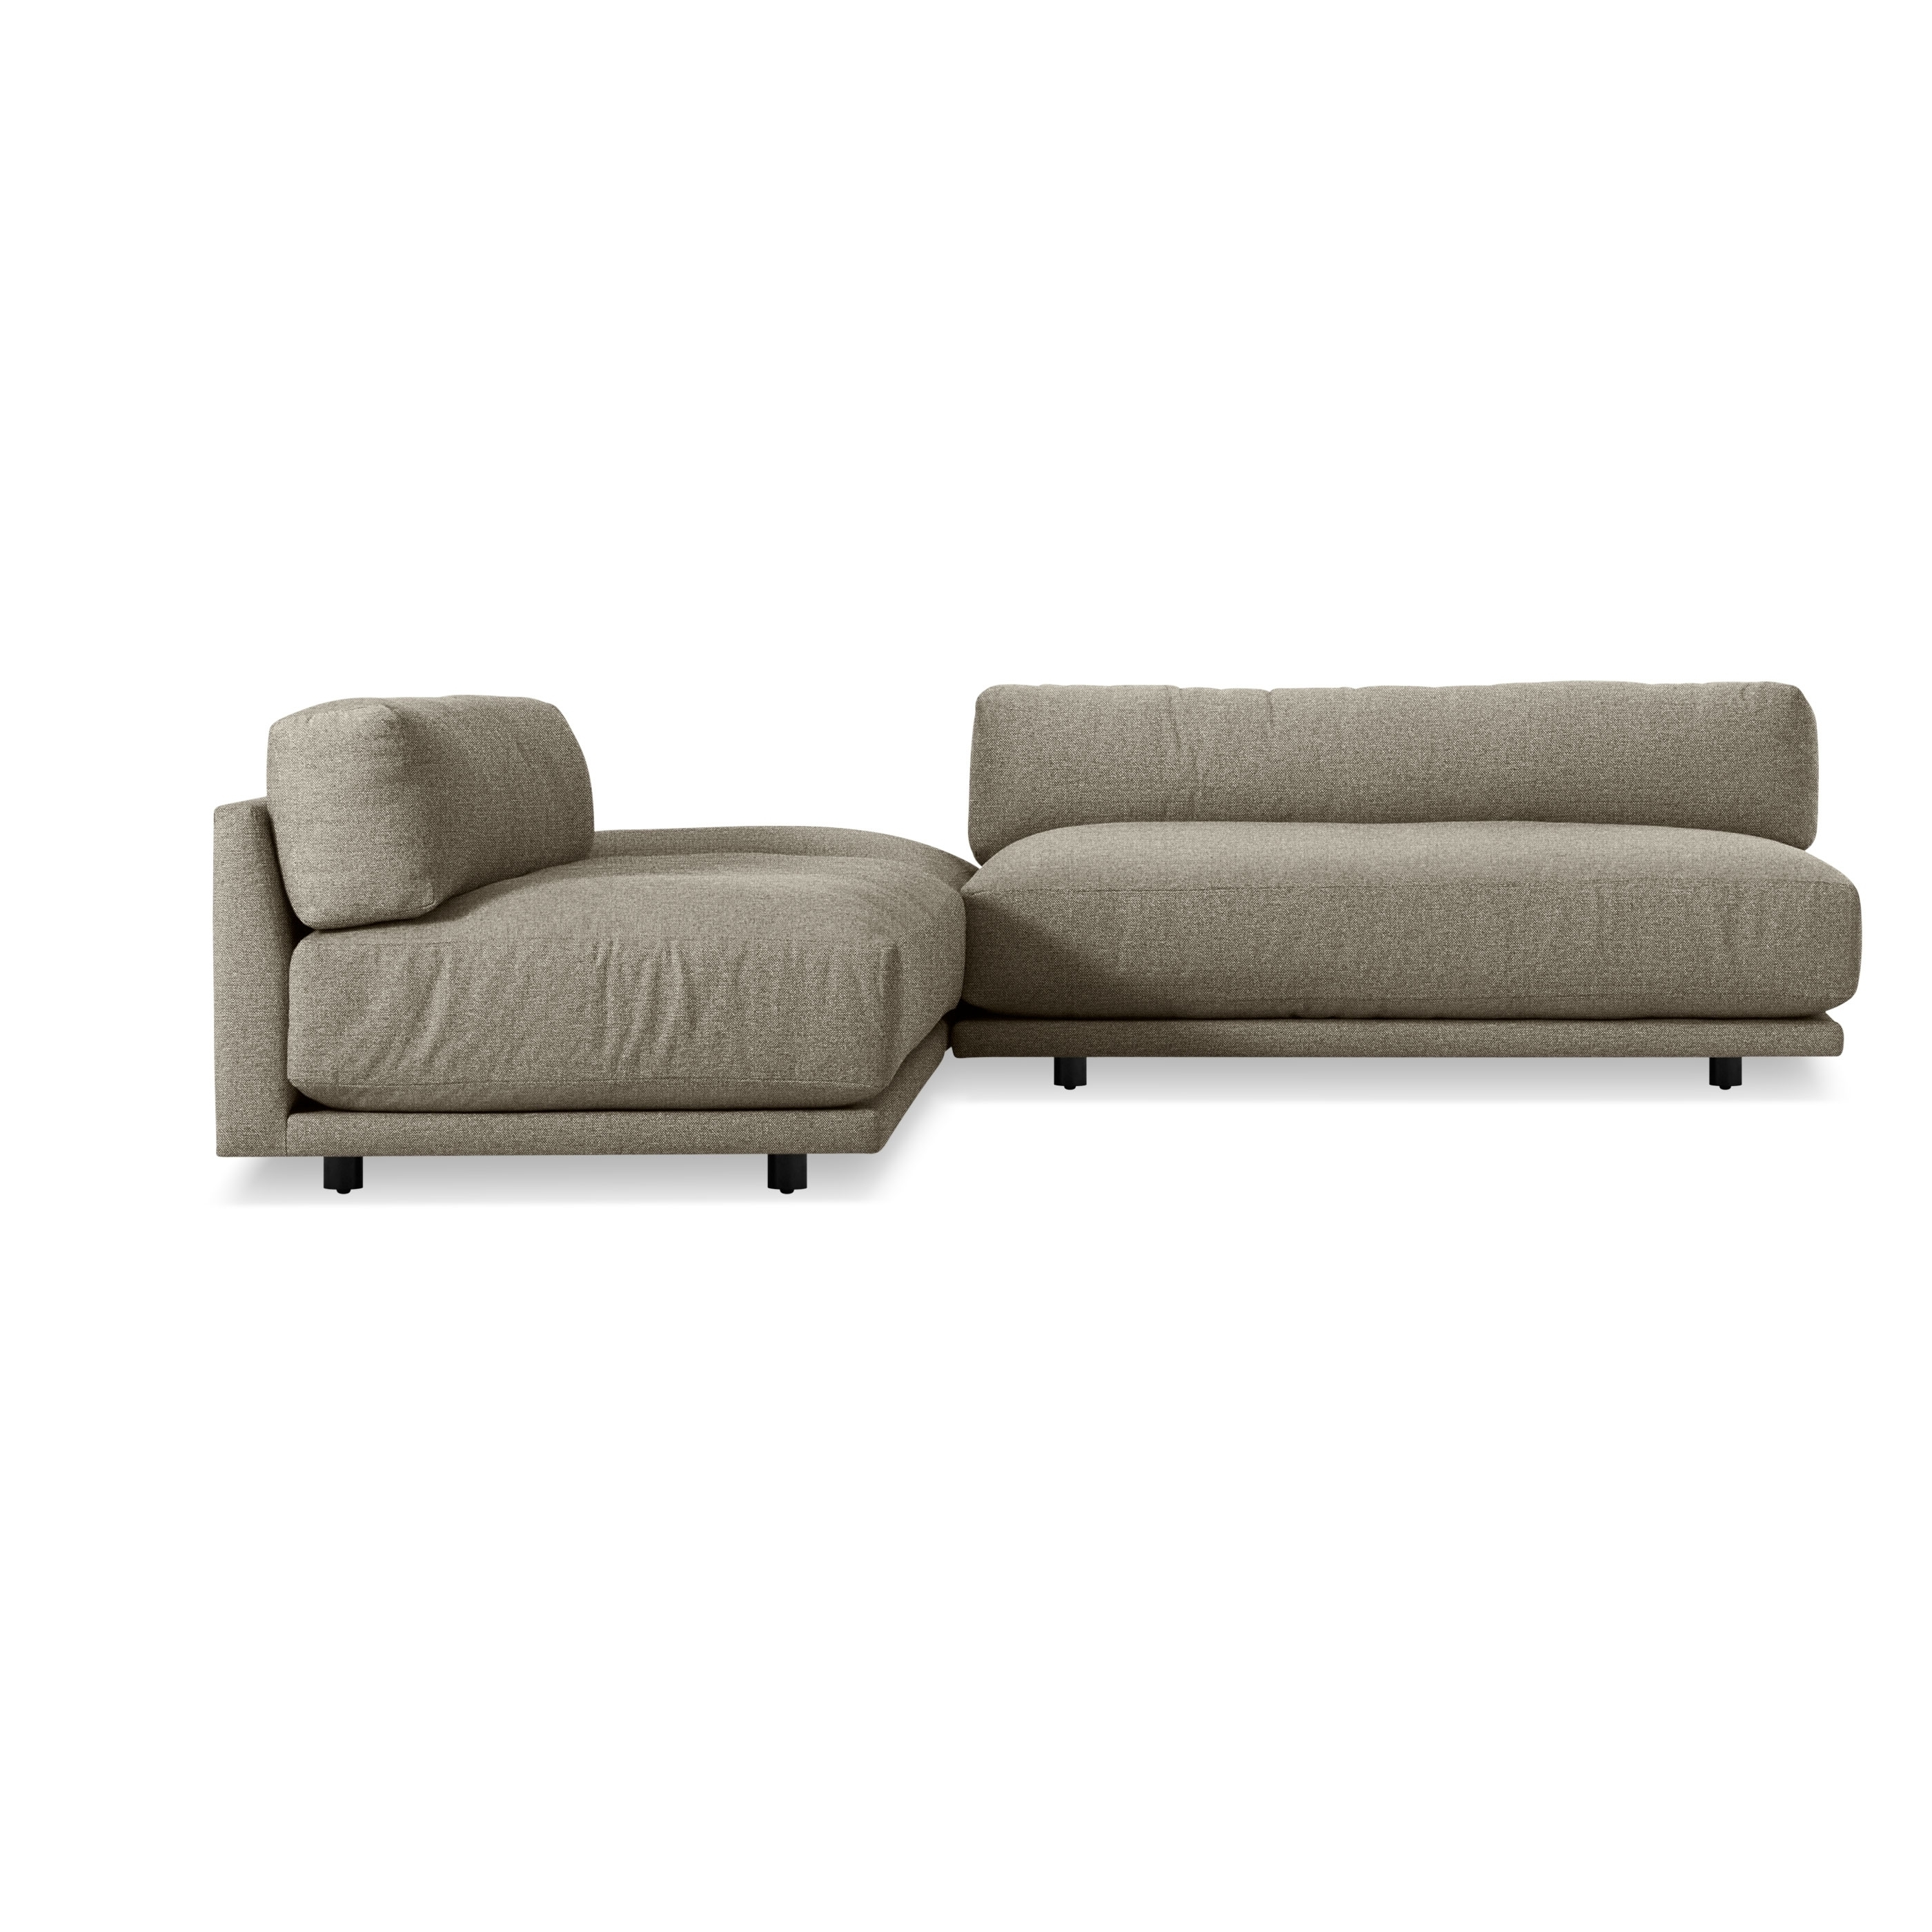 20 Inspirations Of Nova Scotia Sectional Sofas Intended For Nova Scotia Sectional Sofas (Photo 4 of 10)